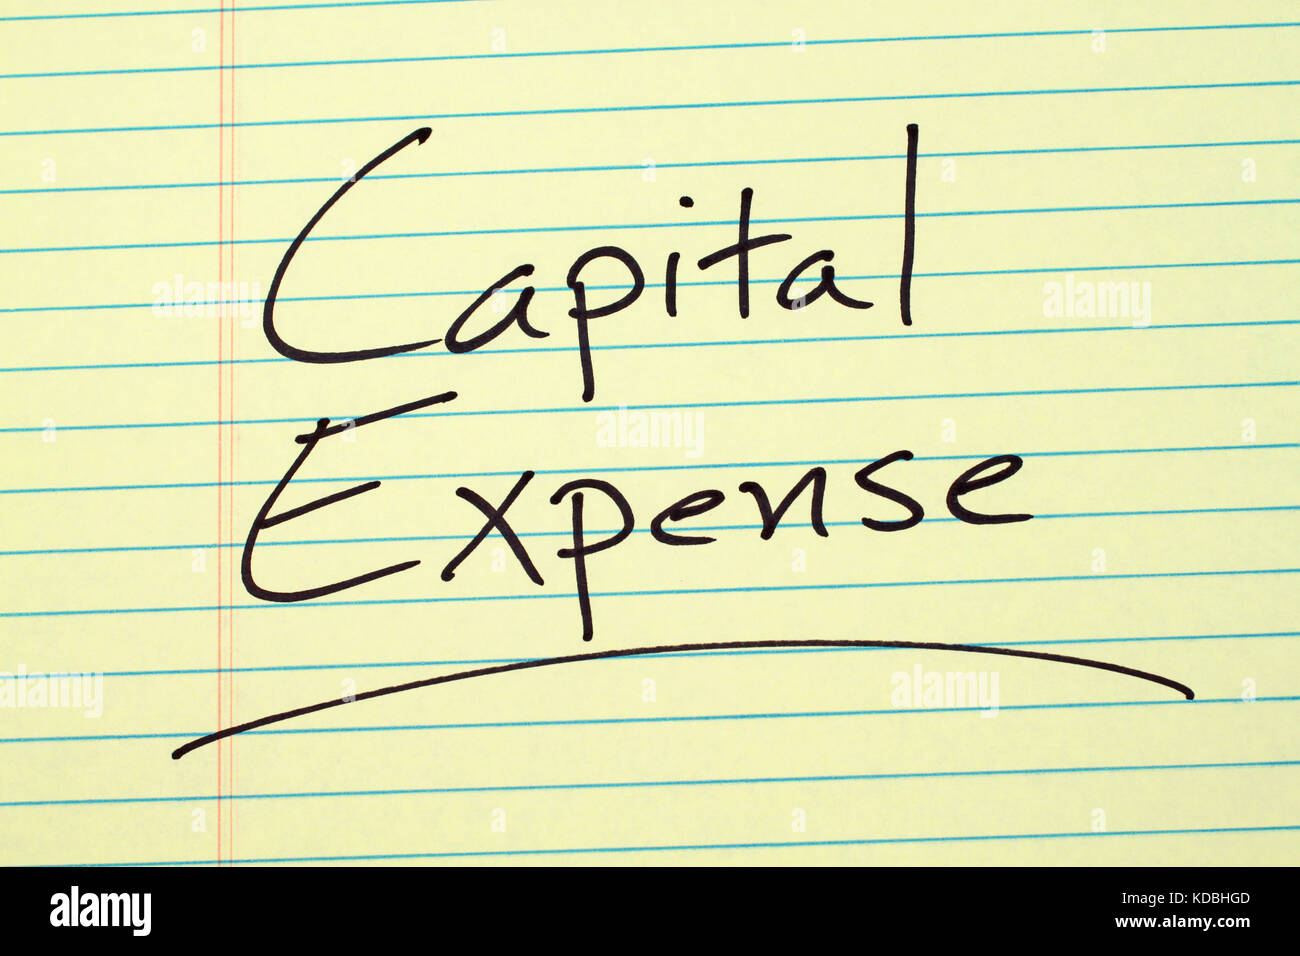 "The word ""Capital Expense"" underlined on a yellow legal pad Stock Photo"